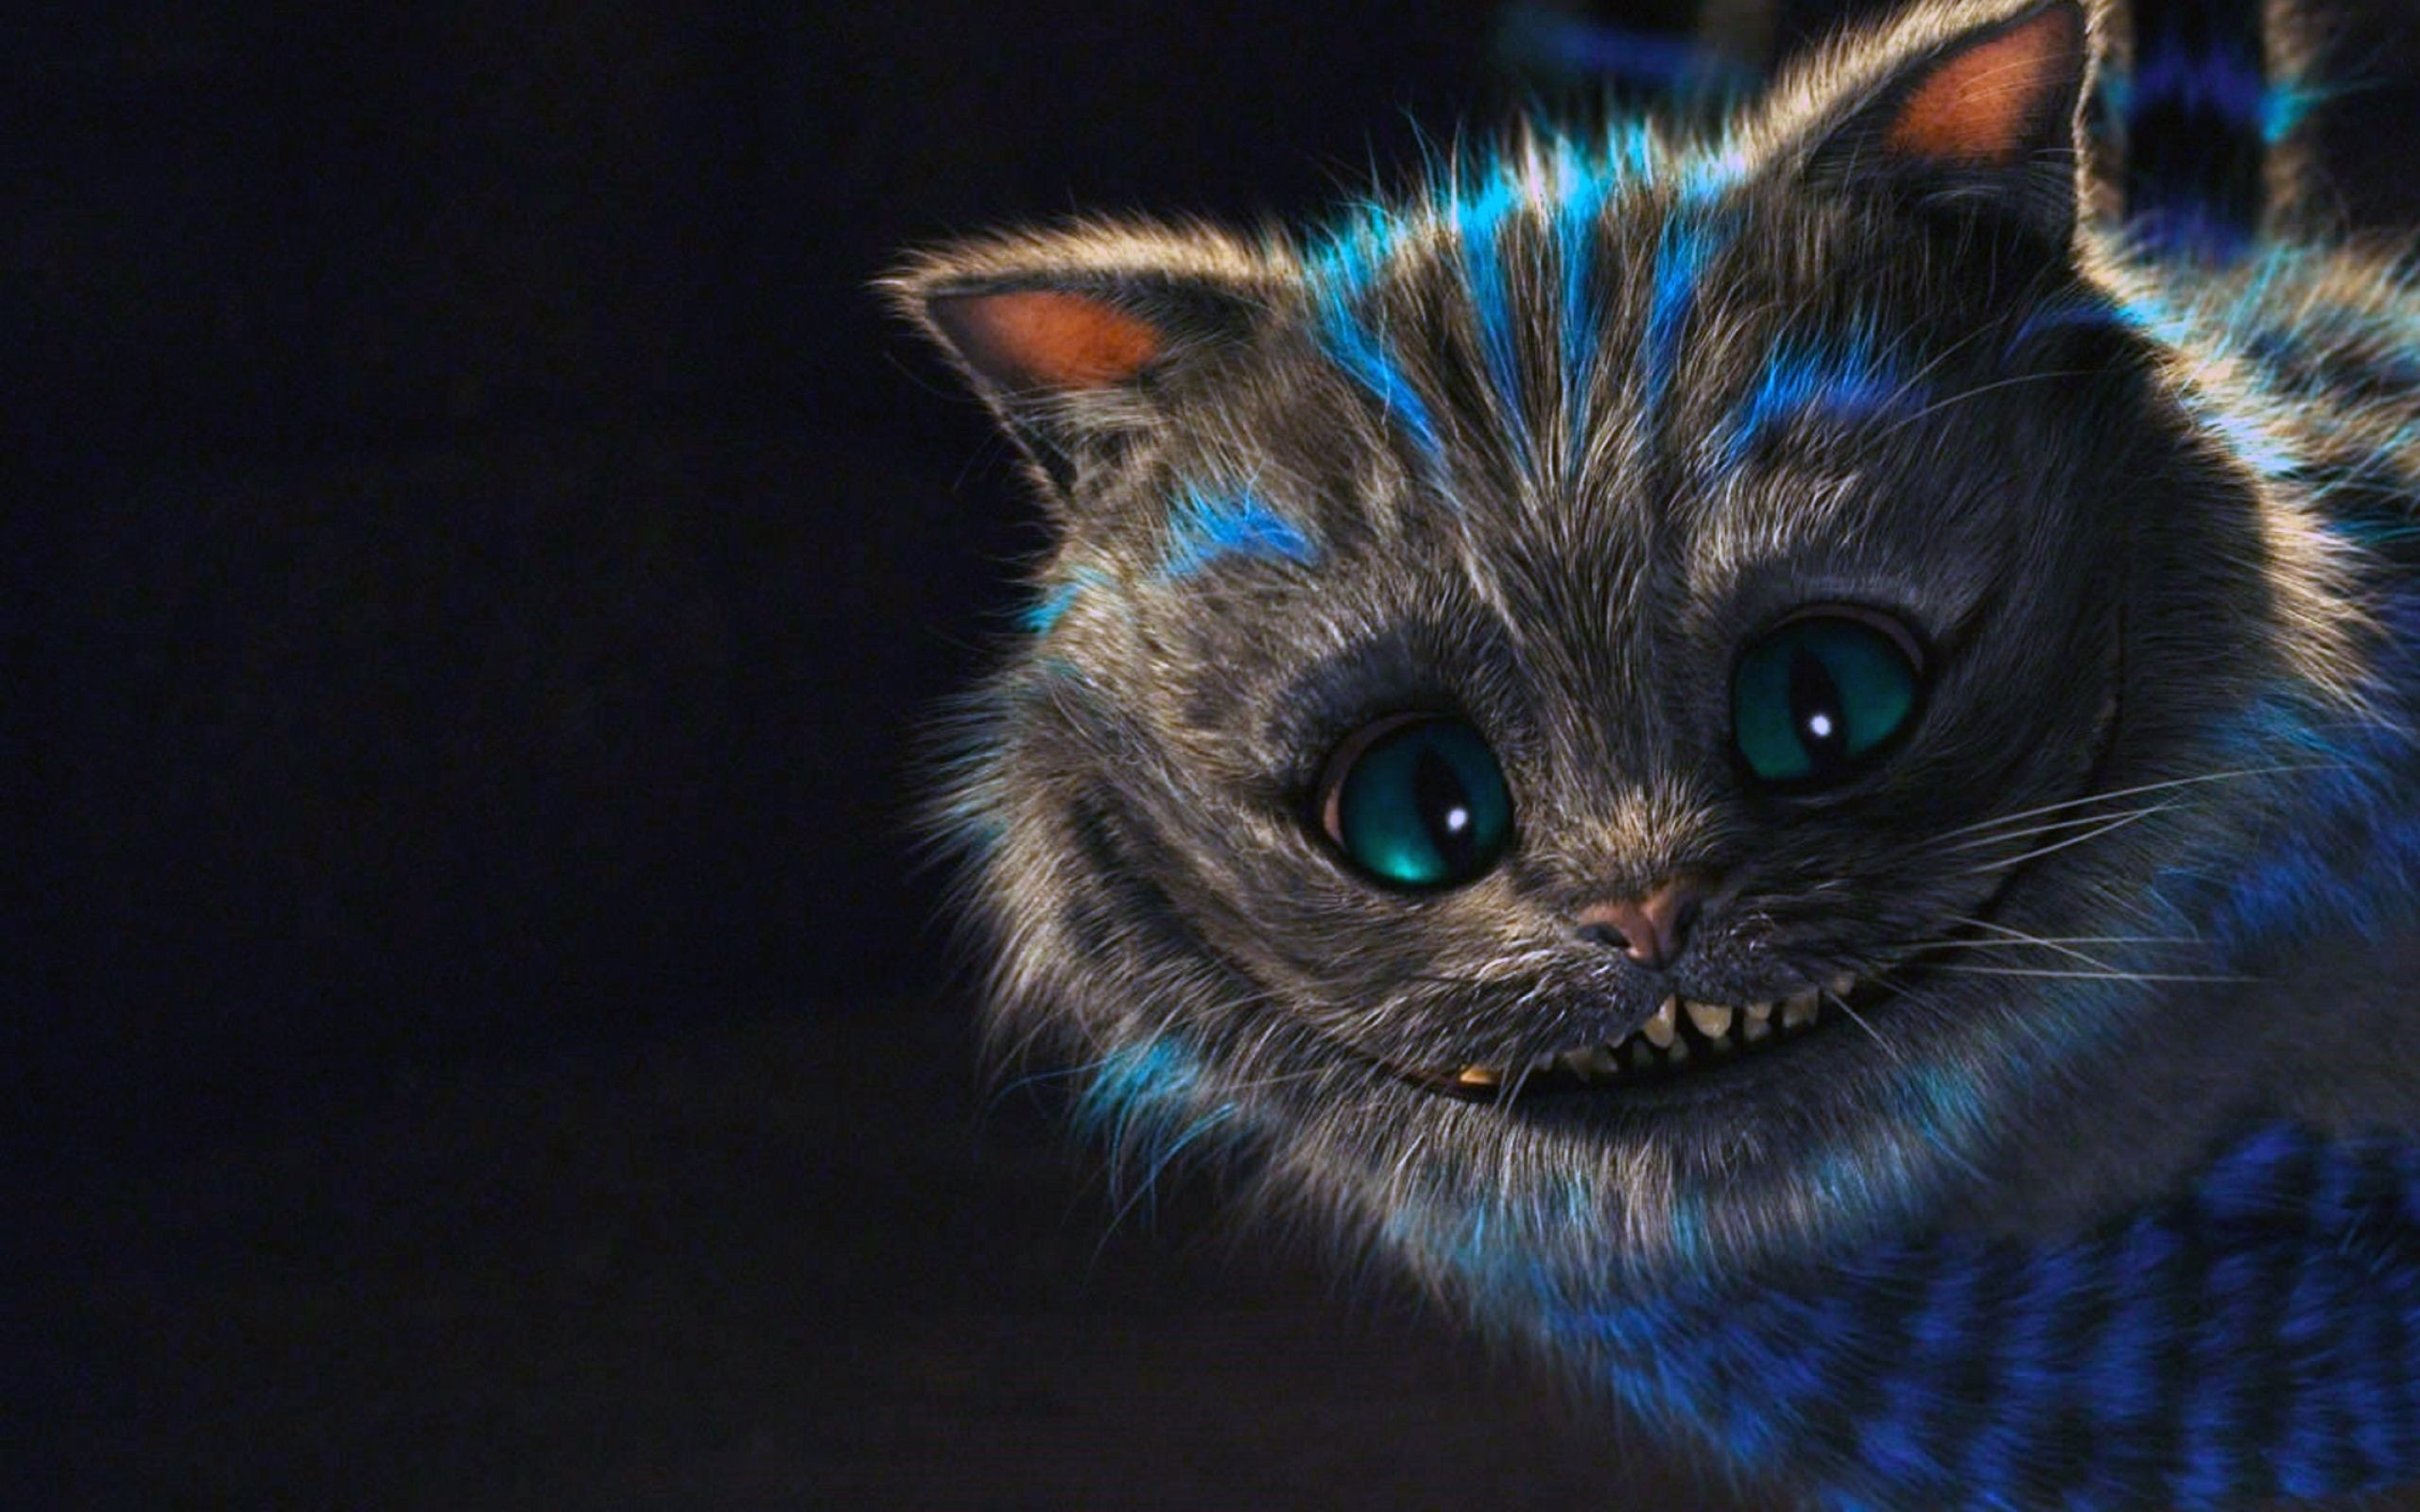 wallpaper.wiki-HD-cheshire-cat-pictures-tumblr-PIC- 2560x1600